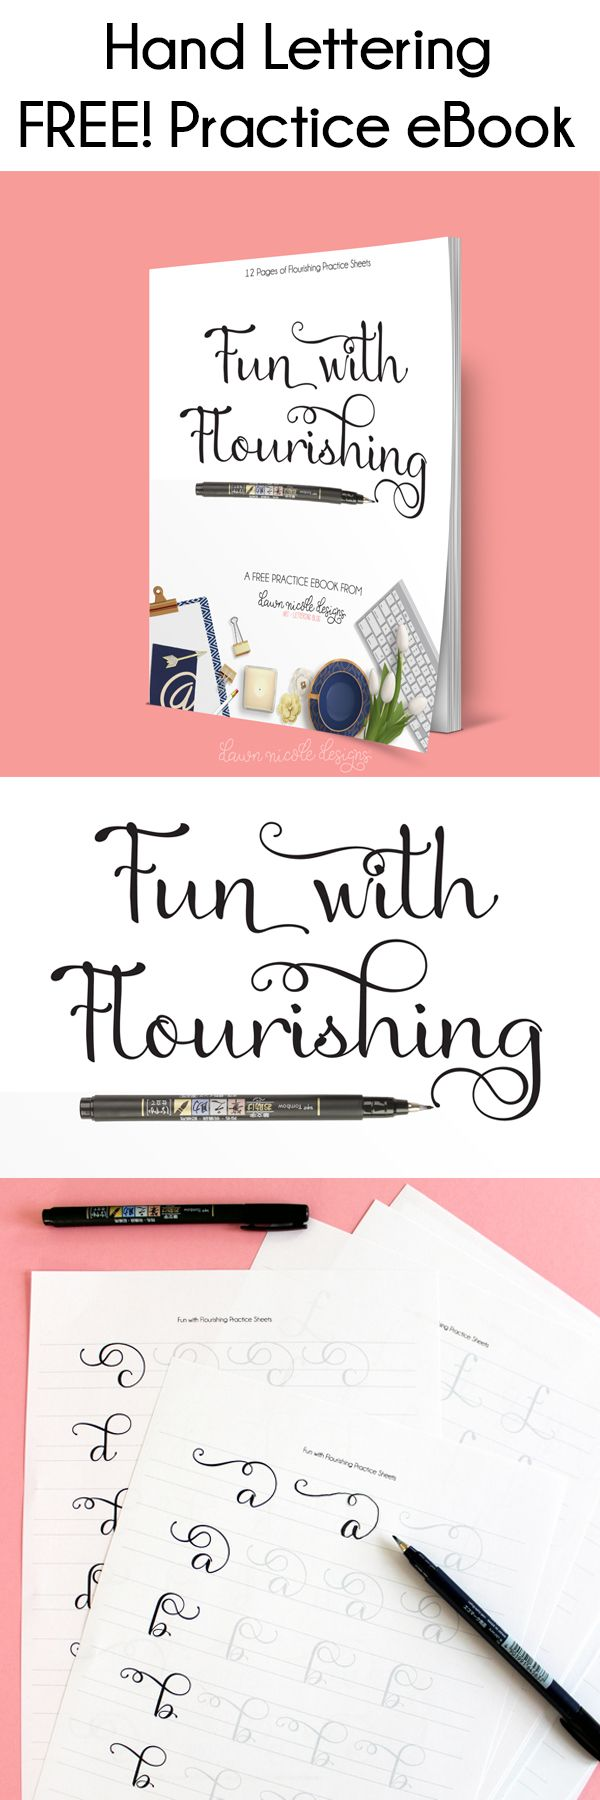 Fun with Flourishing: Free Hand Lettering Practice eBook. Work on your flourishe...